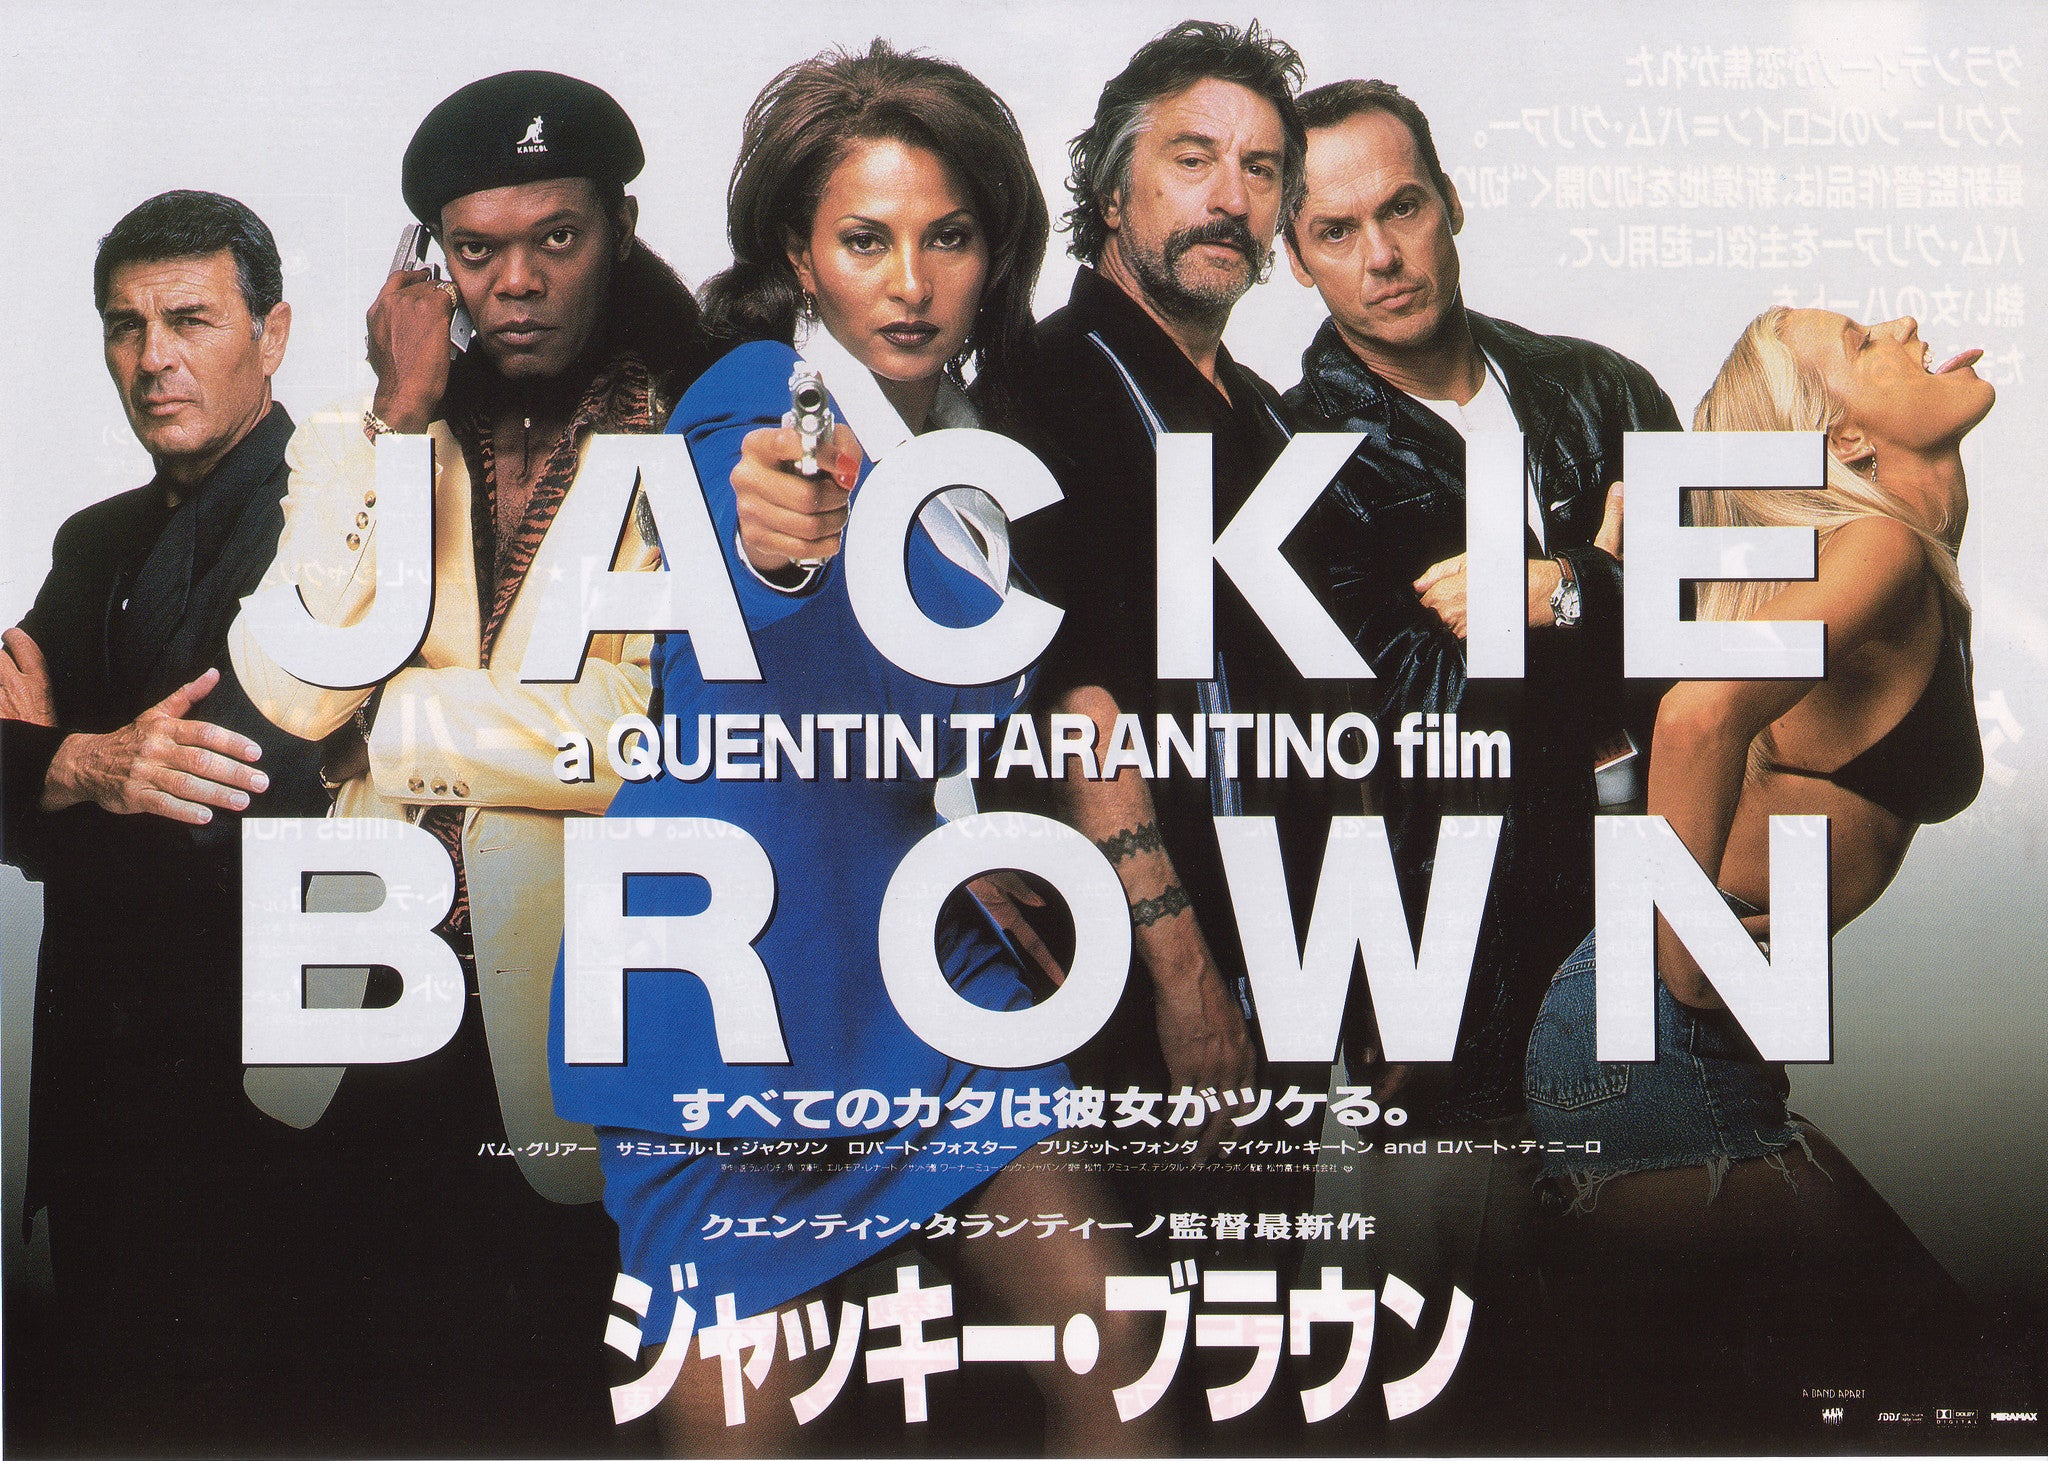 JACKIE BROWN - Japanese chirashi